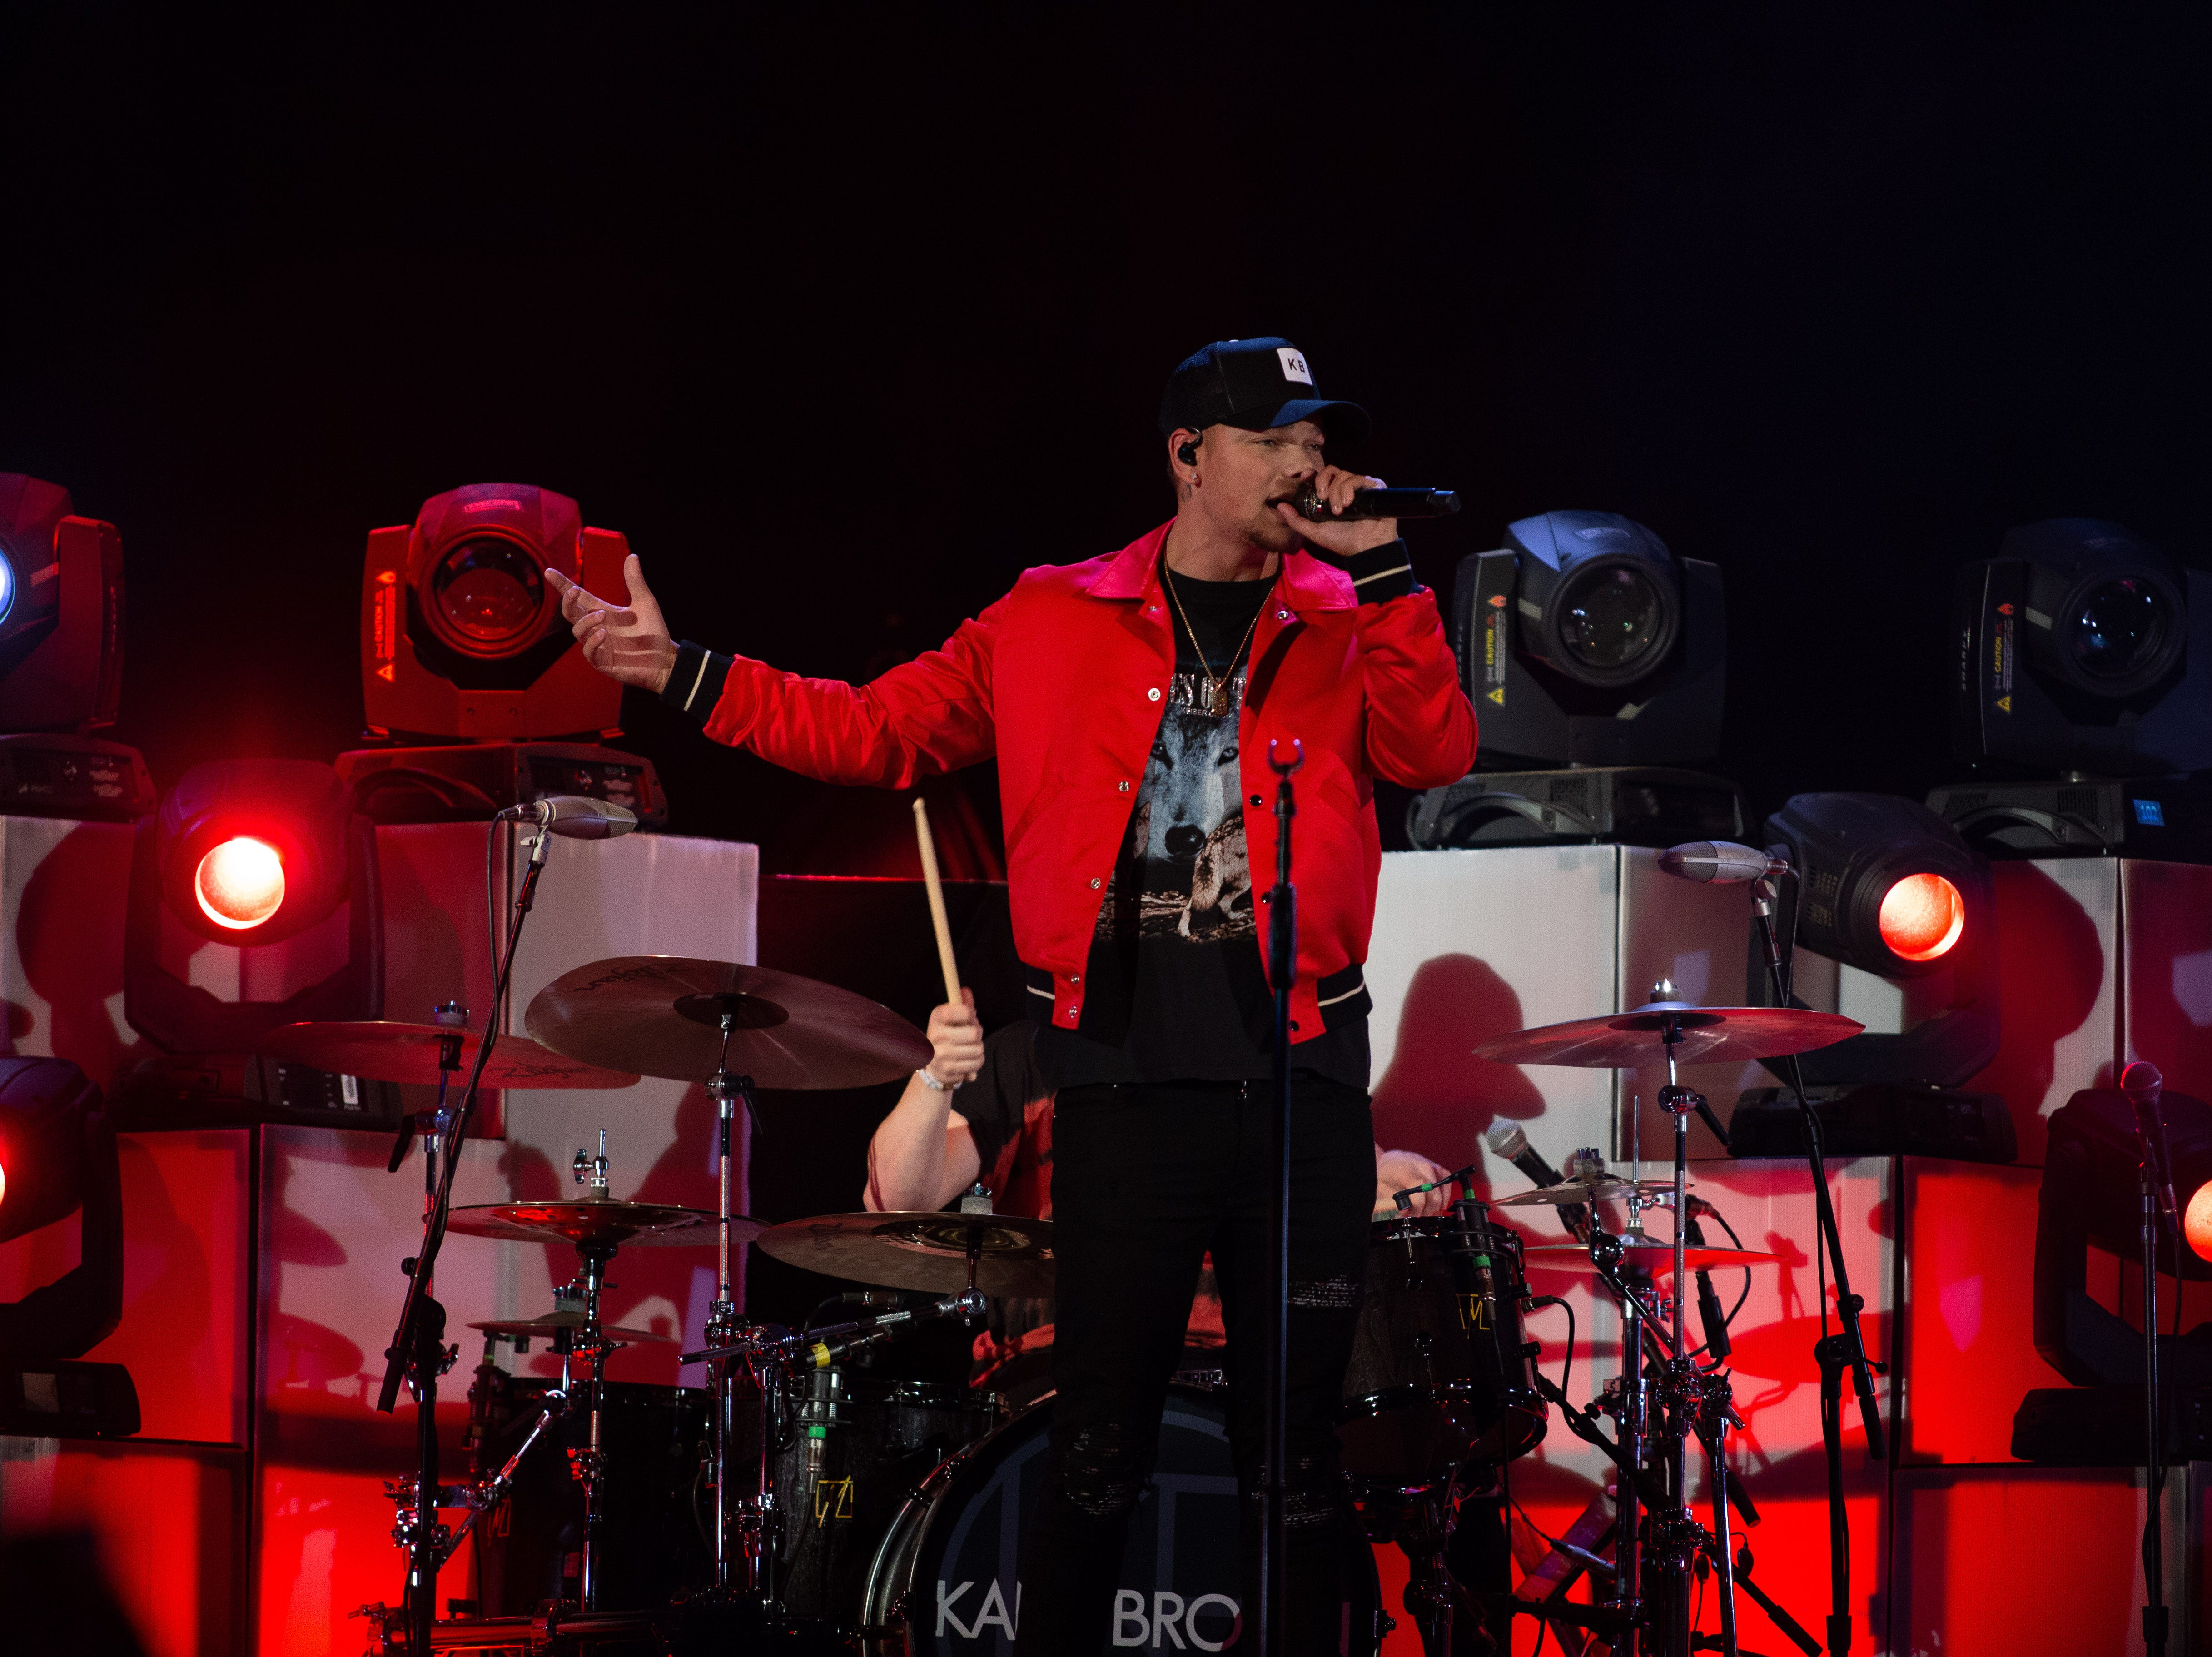 Kane Brown opens for Chris Young during a concert at the Pan Am Center in Las Cruces on Thursday, Sept. 13, 2018.